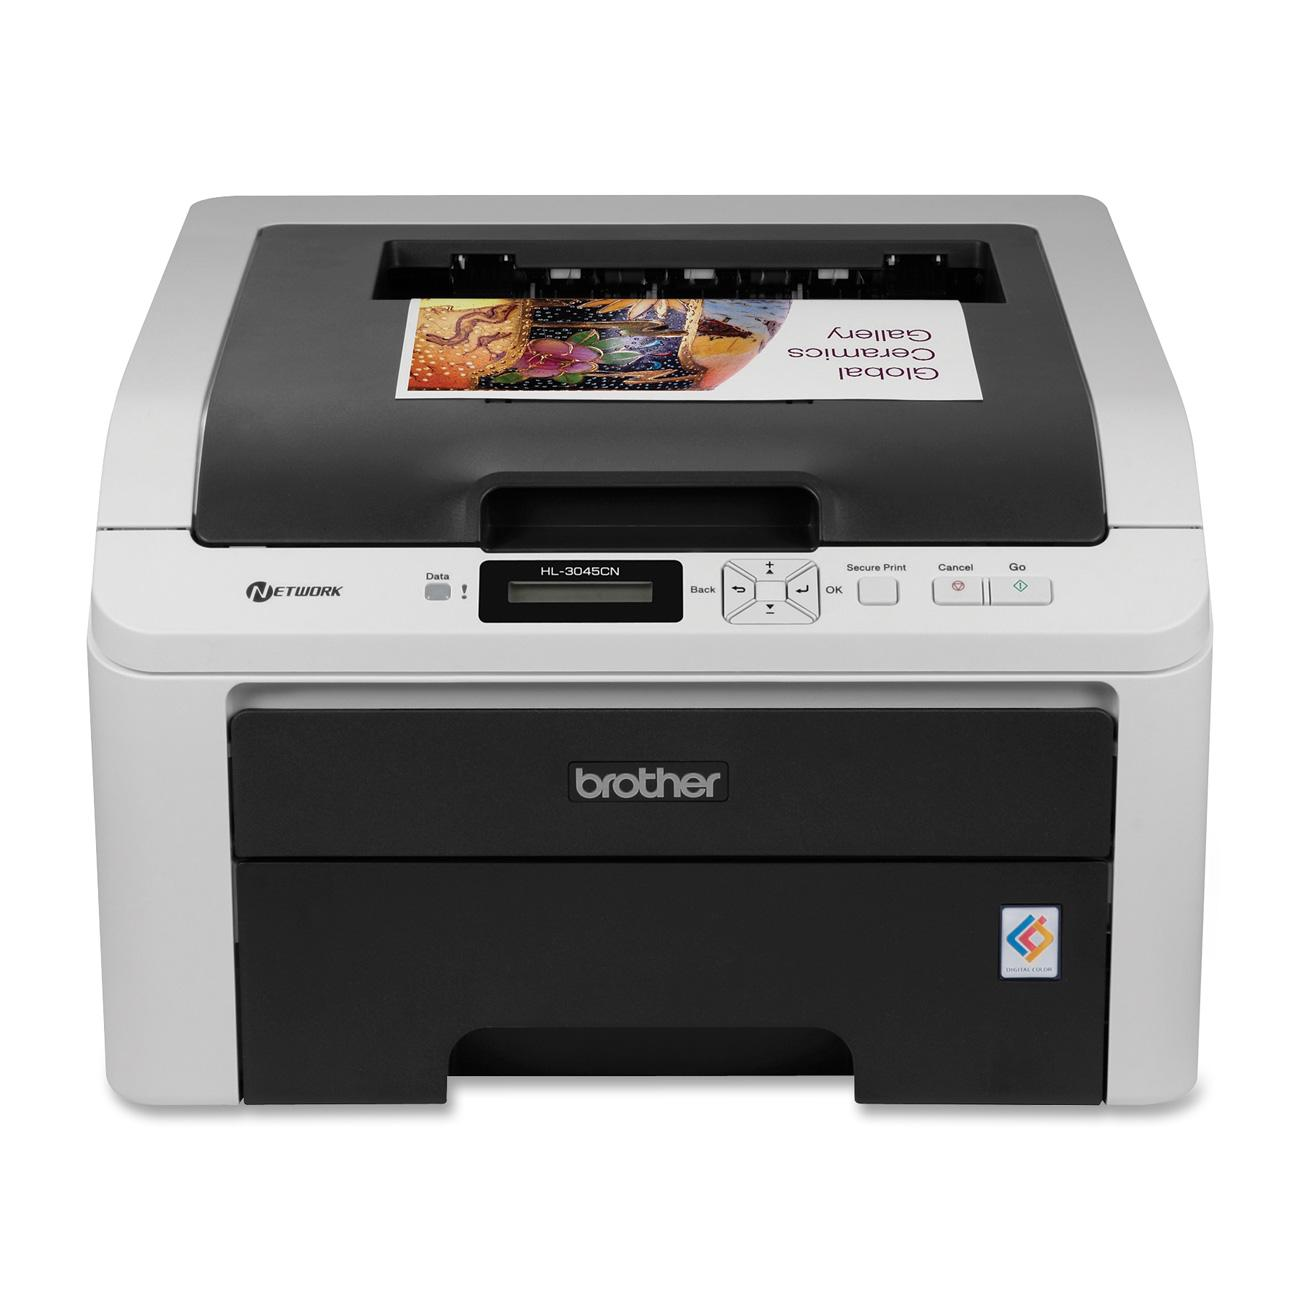 Brother HL-3045CN LED Printer - Color - 2400 x 600 dpi Print - Plain Paper Print - Desktop - 19 ppm Mono / 19 ppm Color Print - 250 sheets Standard Input Capacity - Manual Duplex Print - LCD - Ethernet - USB 0